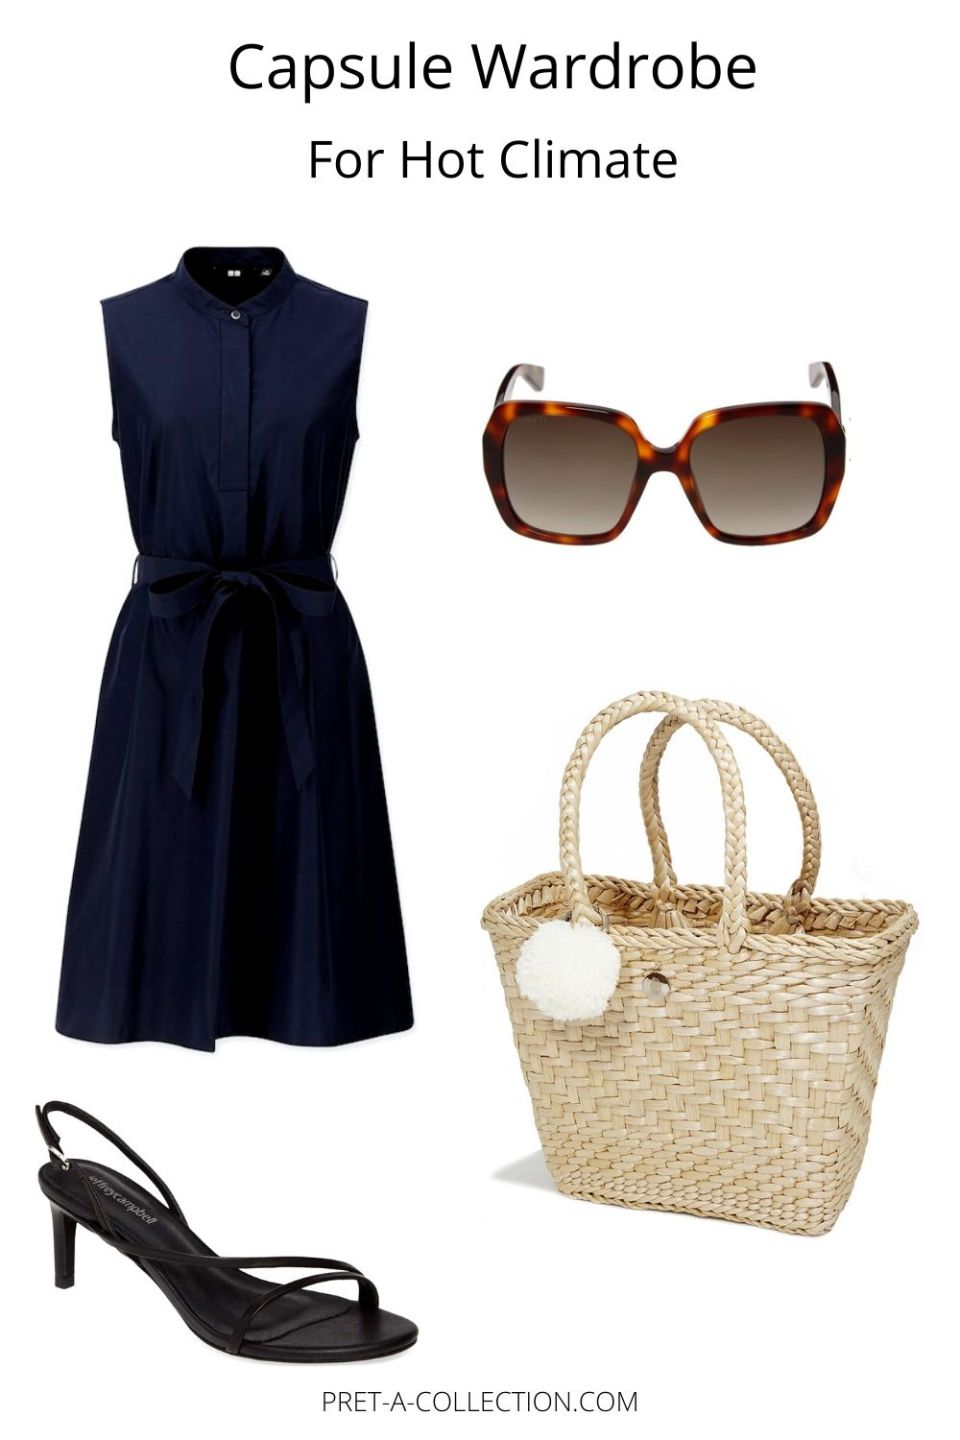 Capsule Wardrobe for hot climate